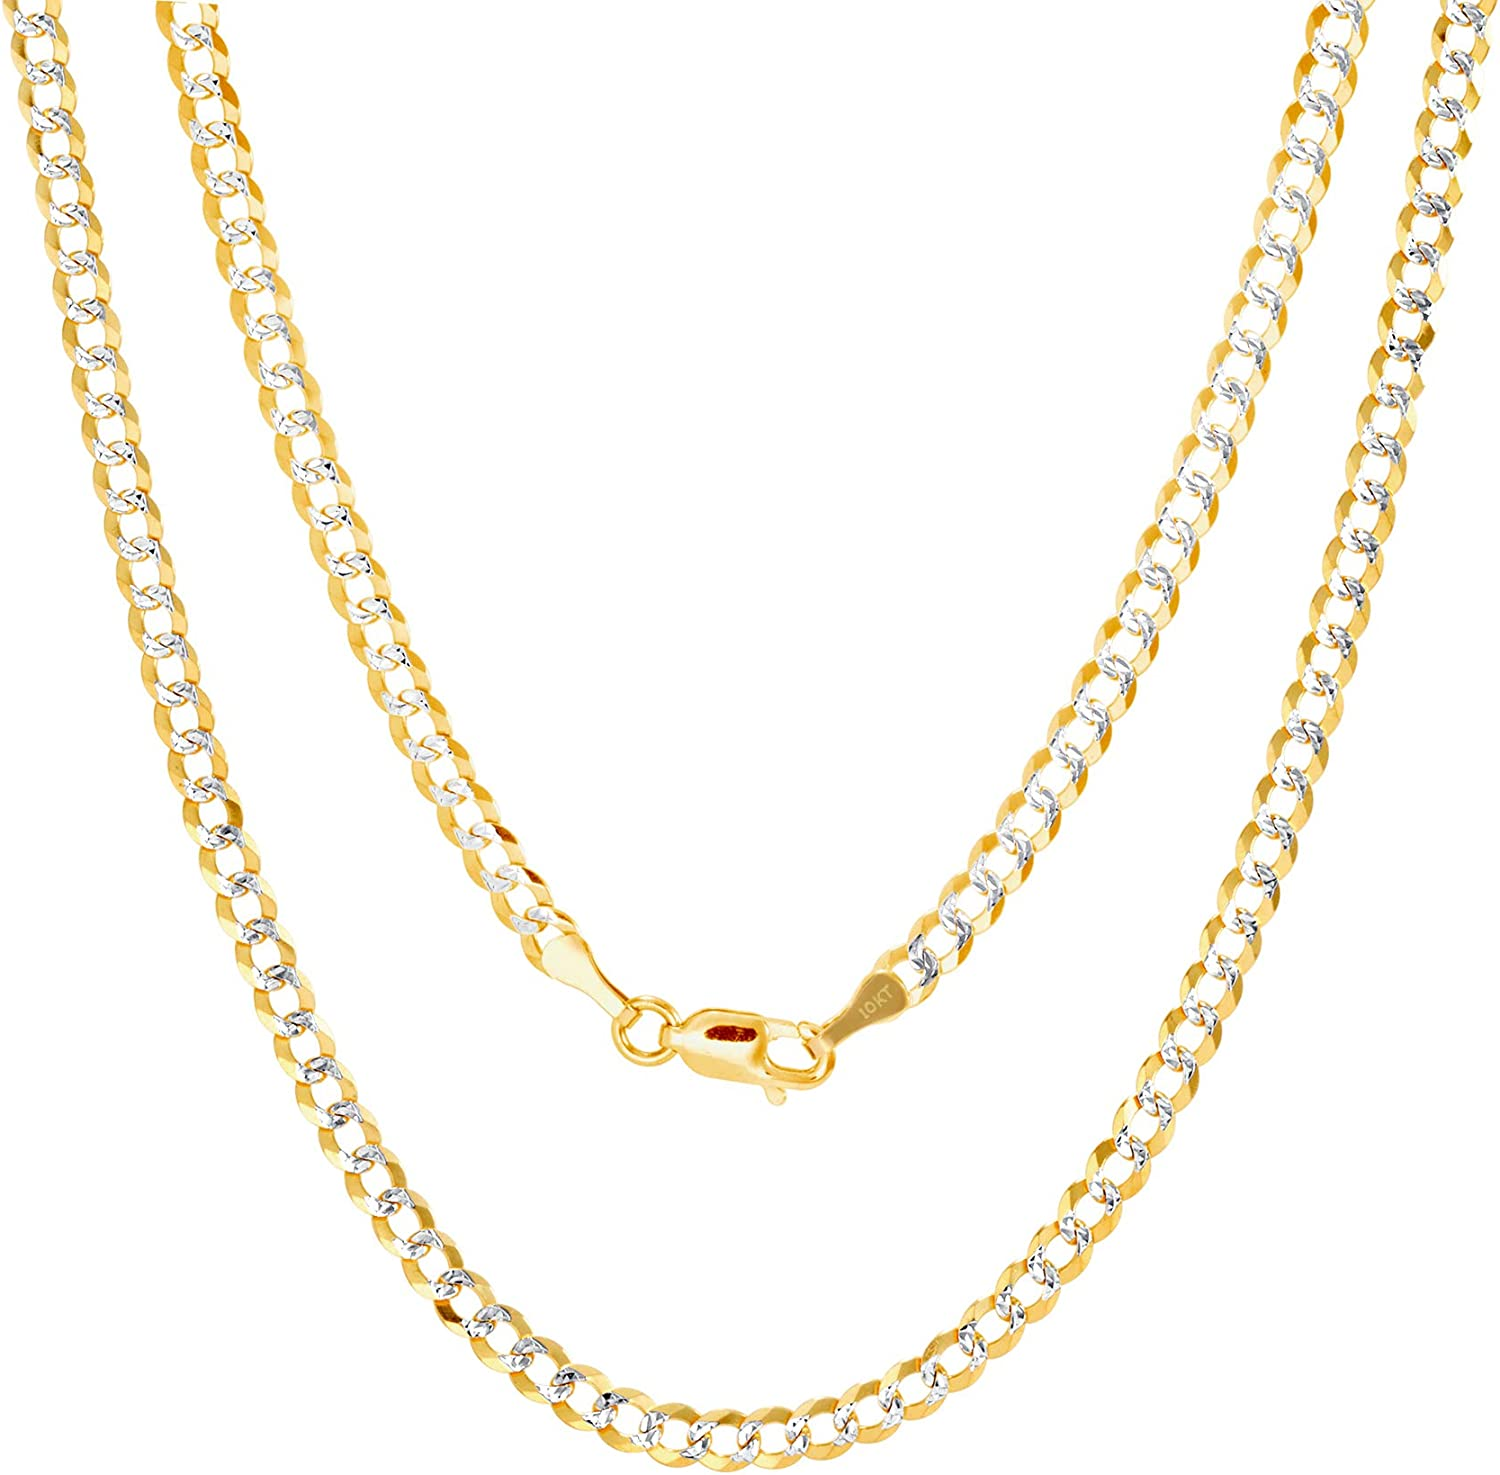 Nuragold 10k Yellow Gold Solid 4mm Cuban Chain Curb Link Diamond Cut Pave Two Tone Pendant Necklace, Mens Womens Lobster Lock 16